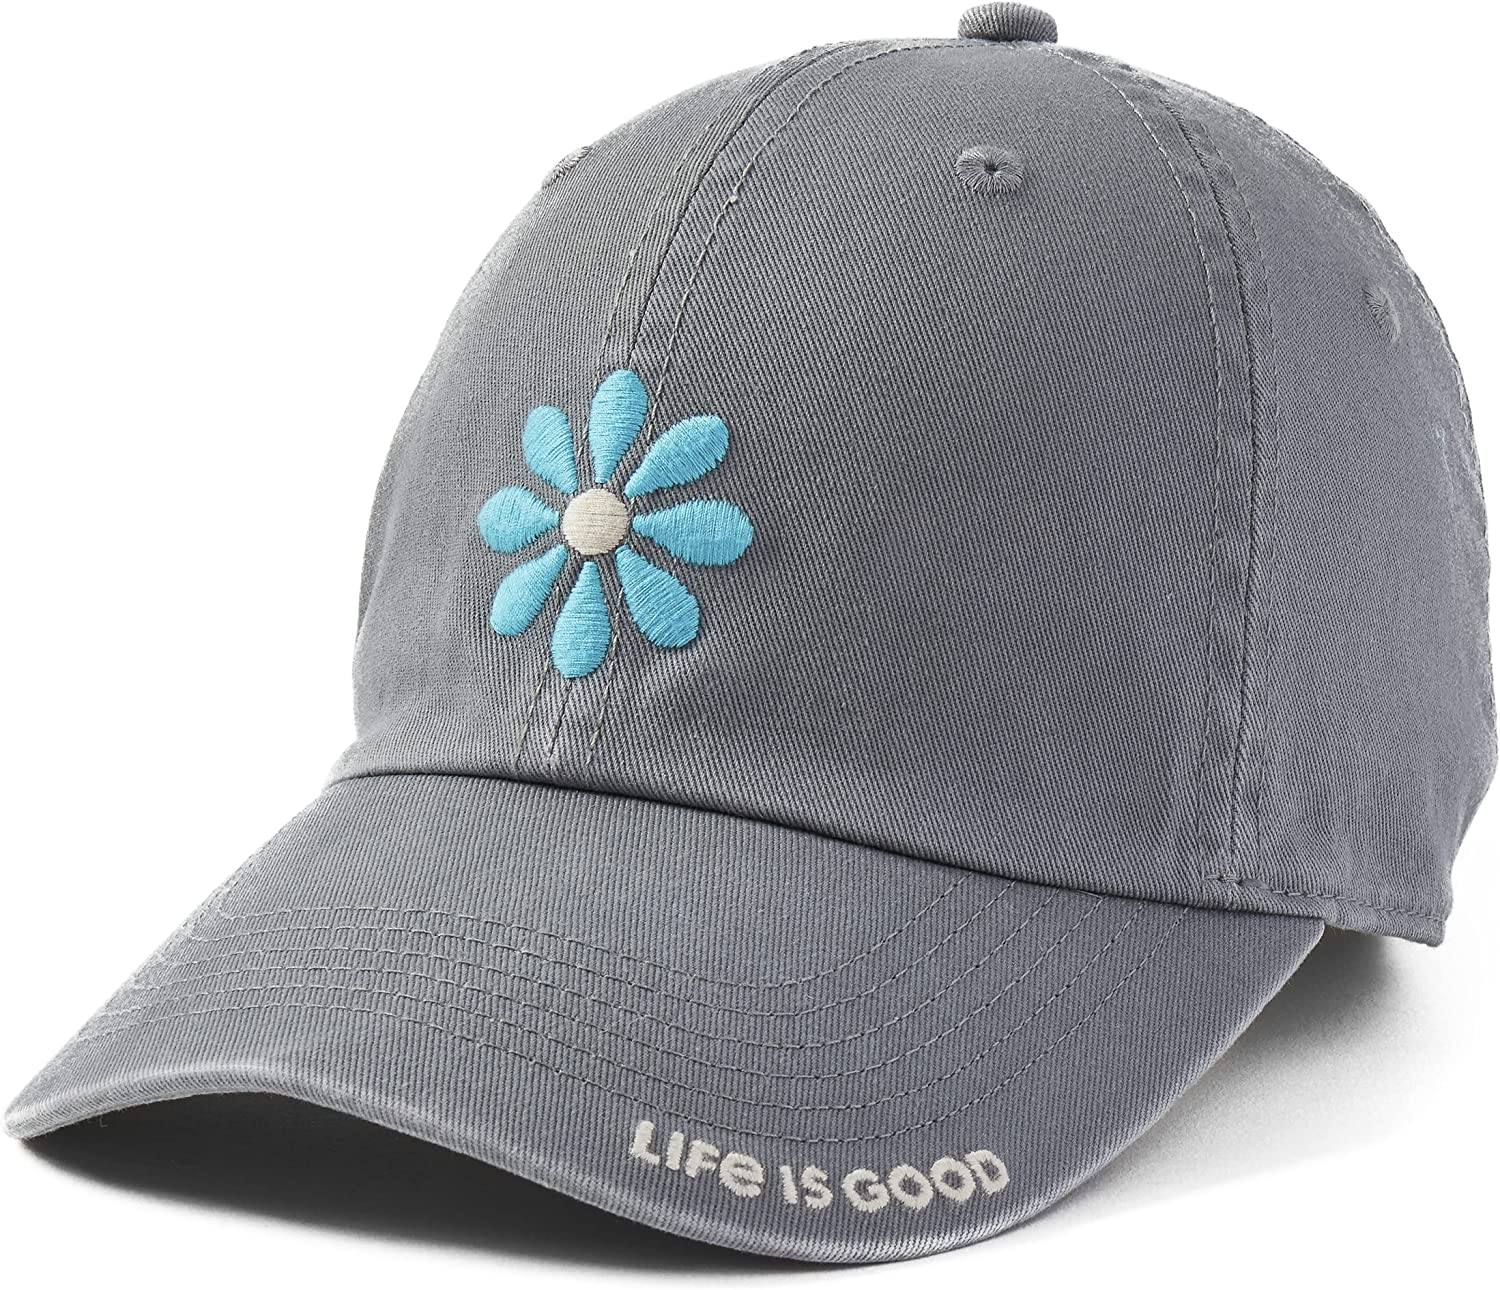 Manufacturer regenerated product Life is Good Genuine Unisex-Adult Chill Ha Embroidered Cap Brim Baseball